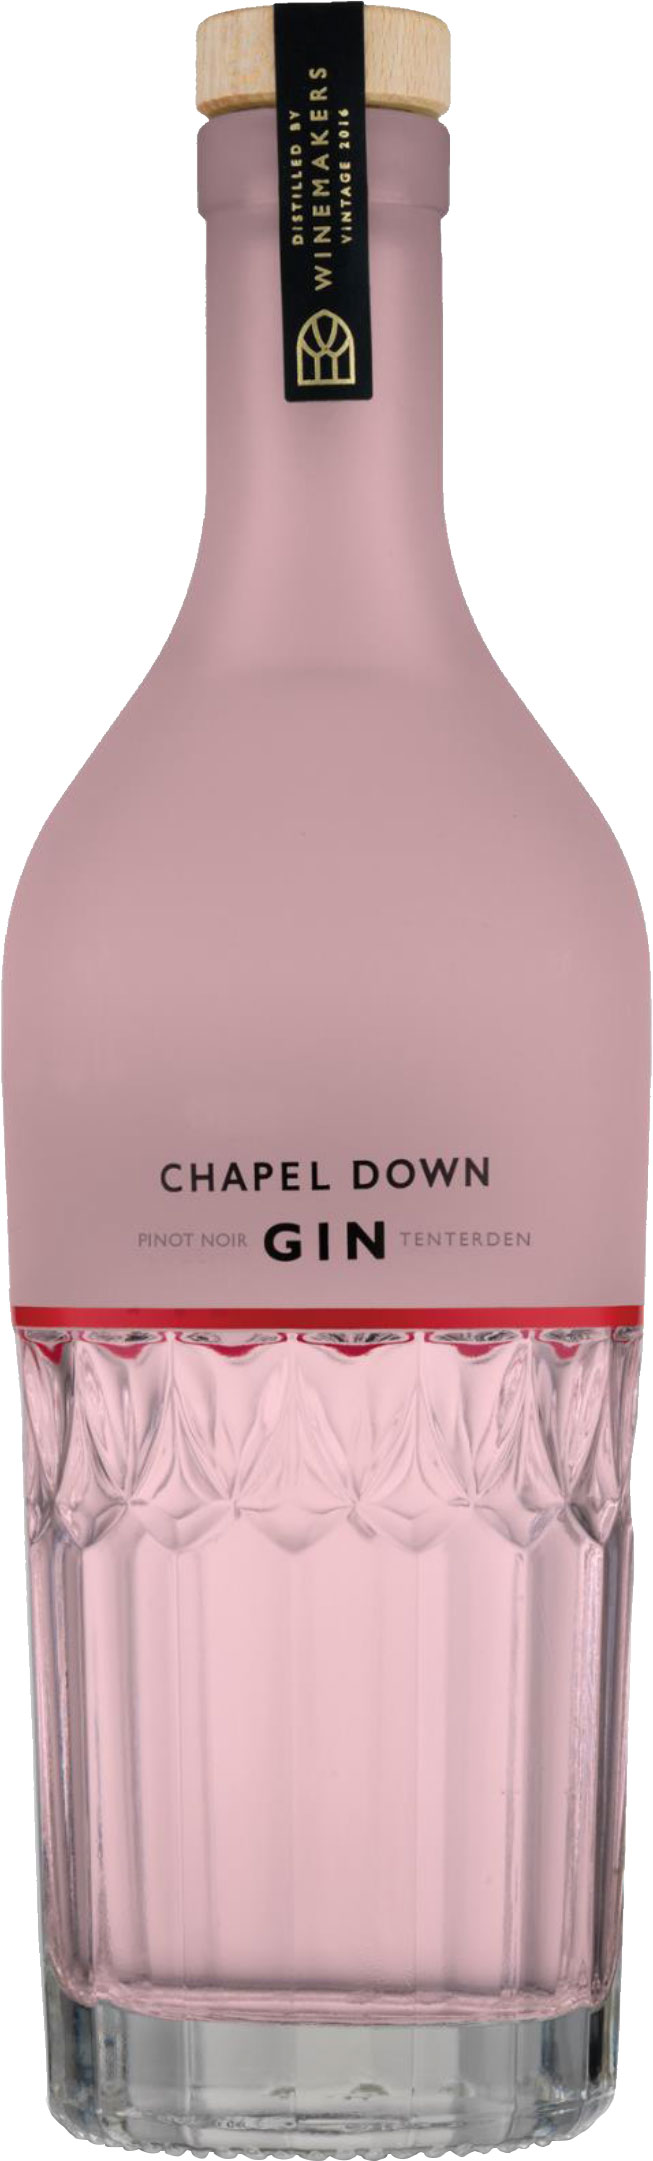 Chapel Down - Pinot Noir Gin 70cl Bottle